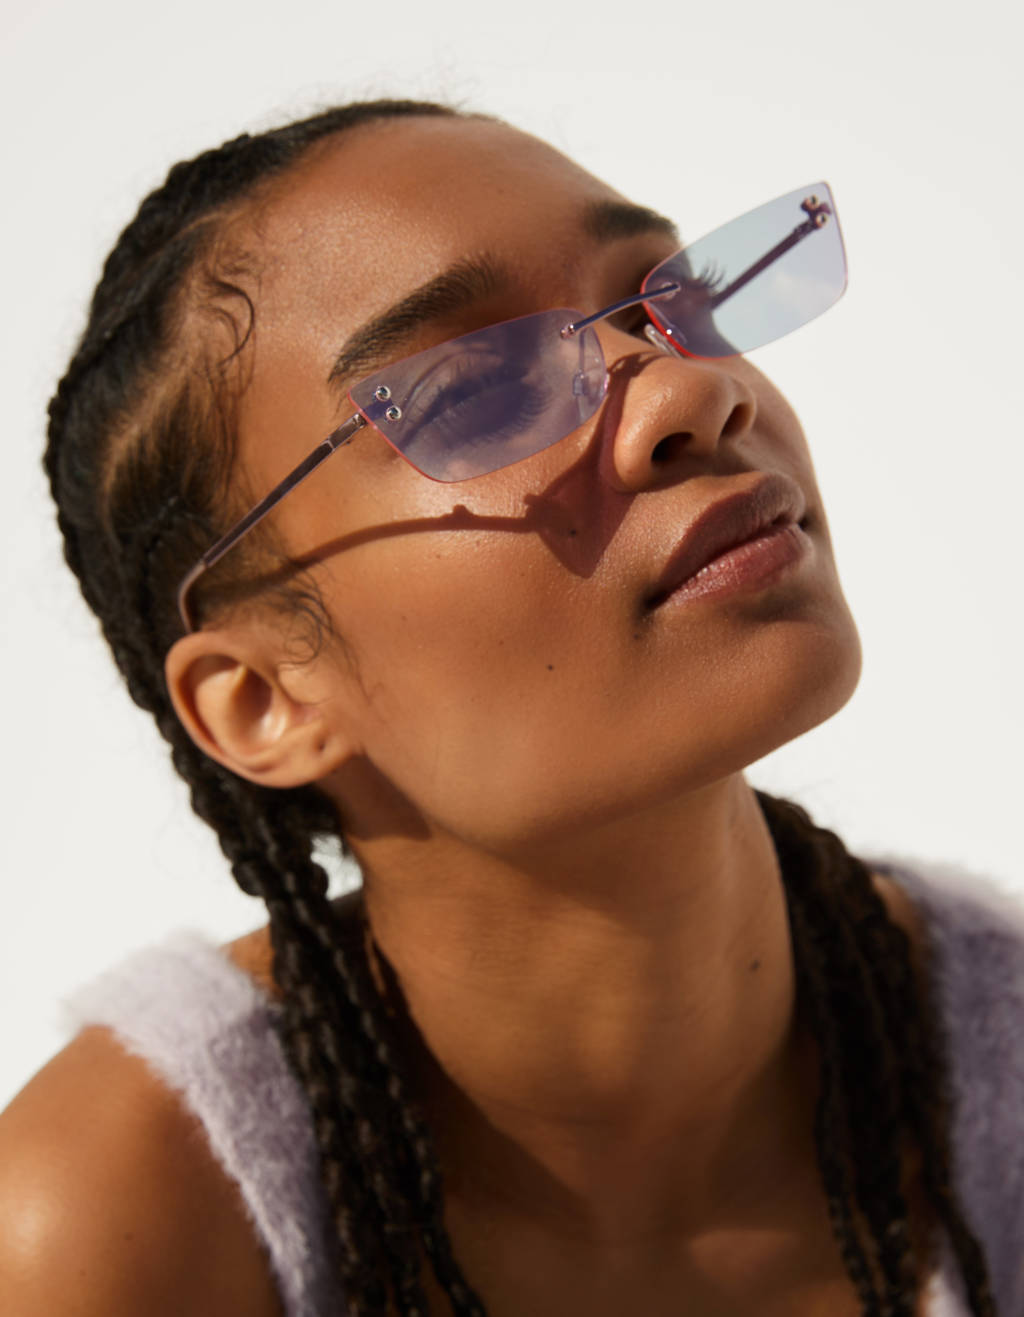 Rectangular sunglasses with mirrored lenses